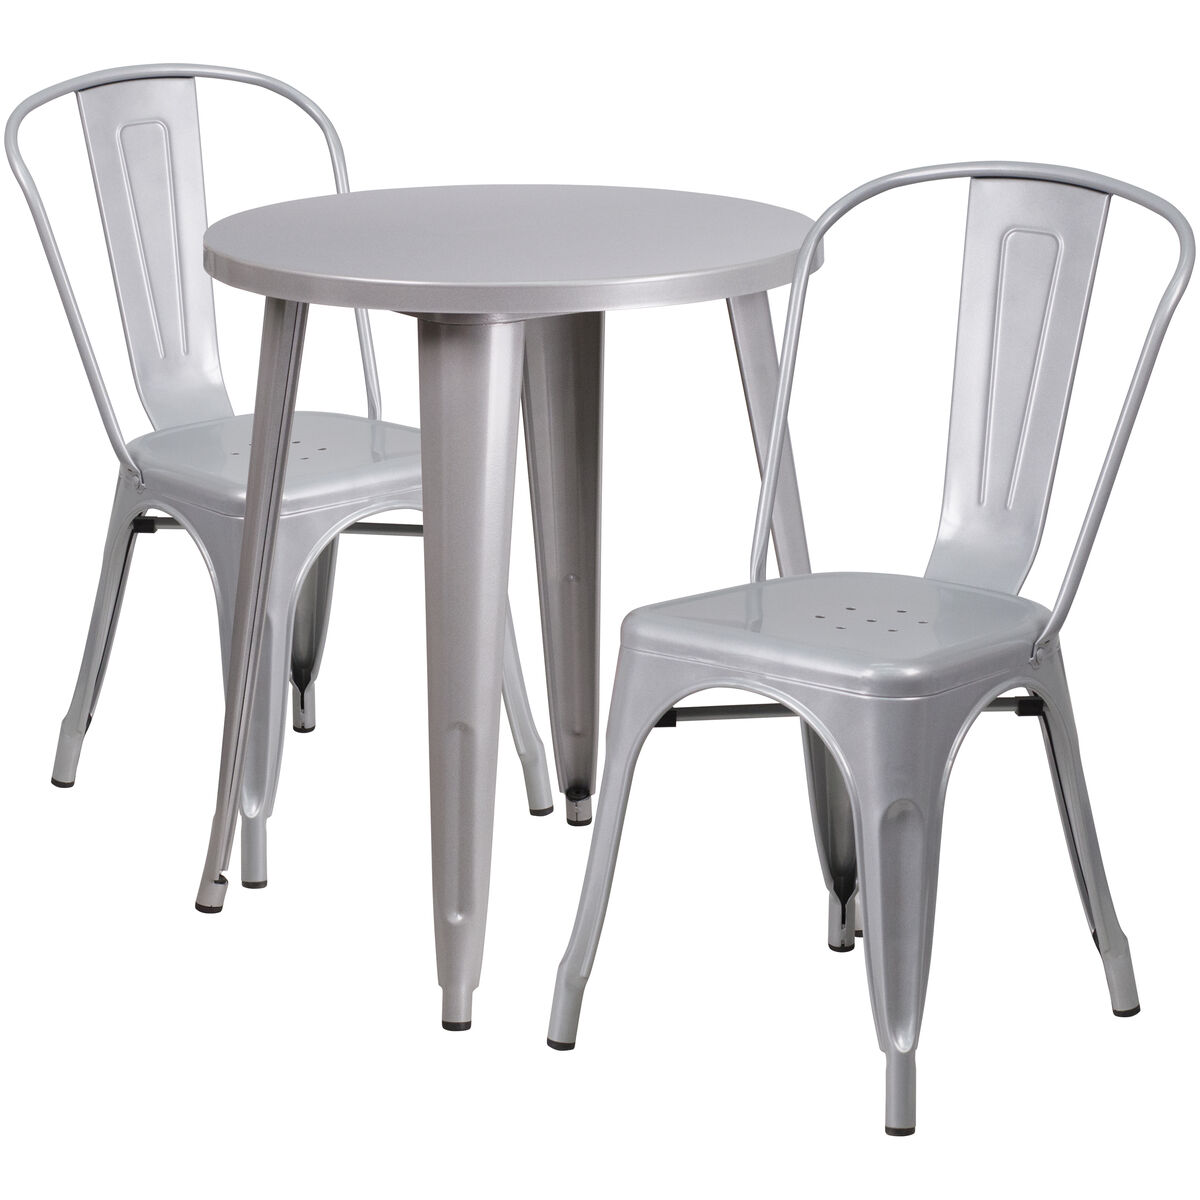 RD Silver Metal Table Set CHTHCAFESILGG - Round metal cafe table